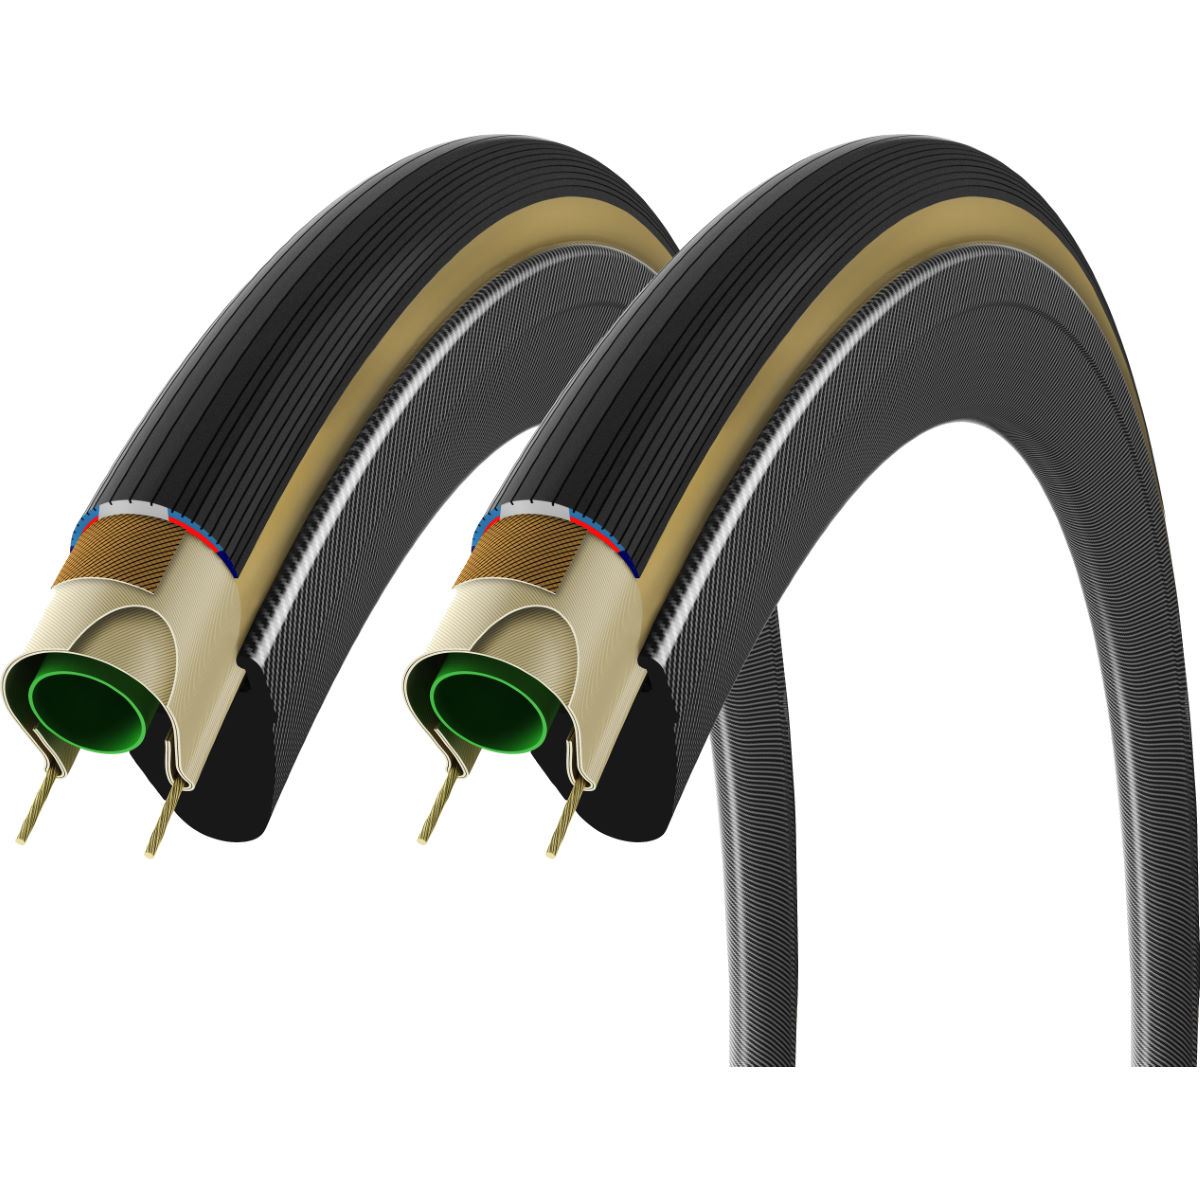 Vittoria Corsa G+ Folding Graphene Tyres 25c Brown/Black - -